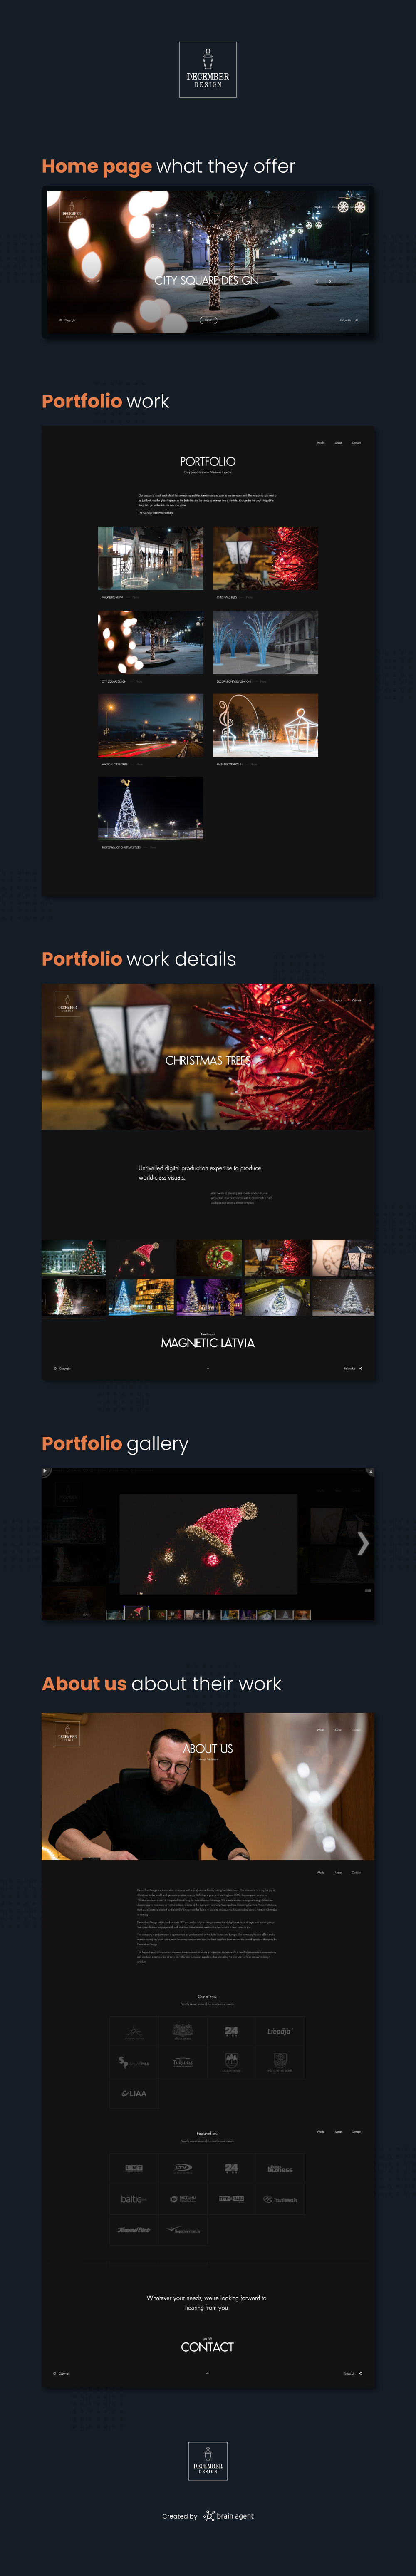 December Design - website portfolio